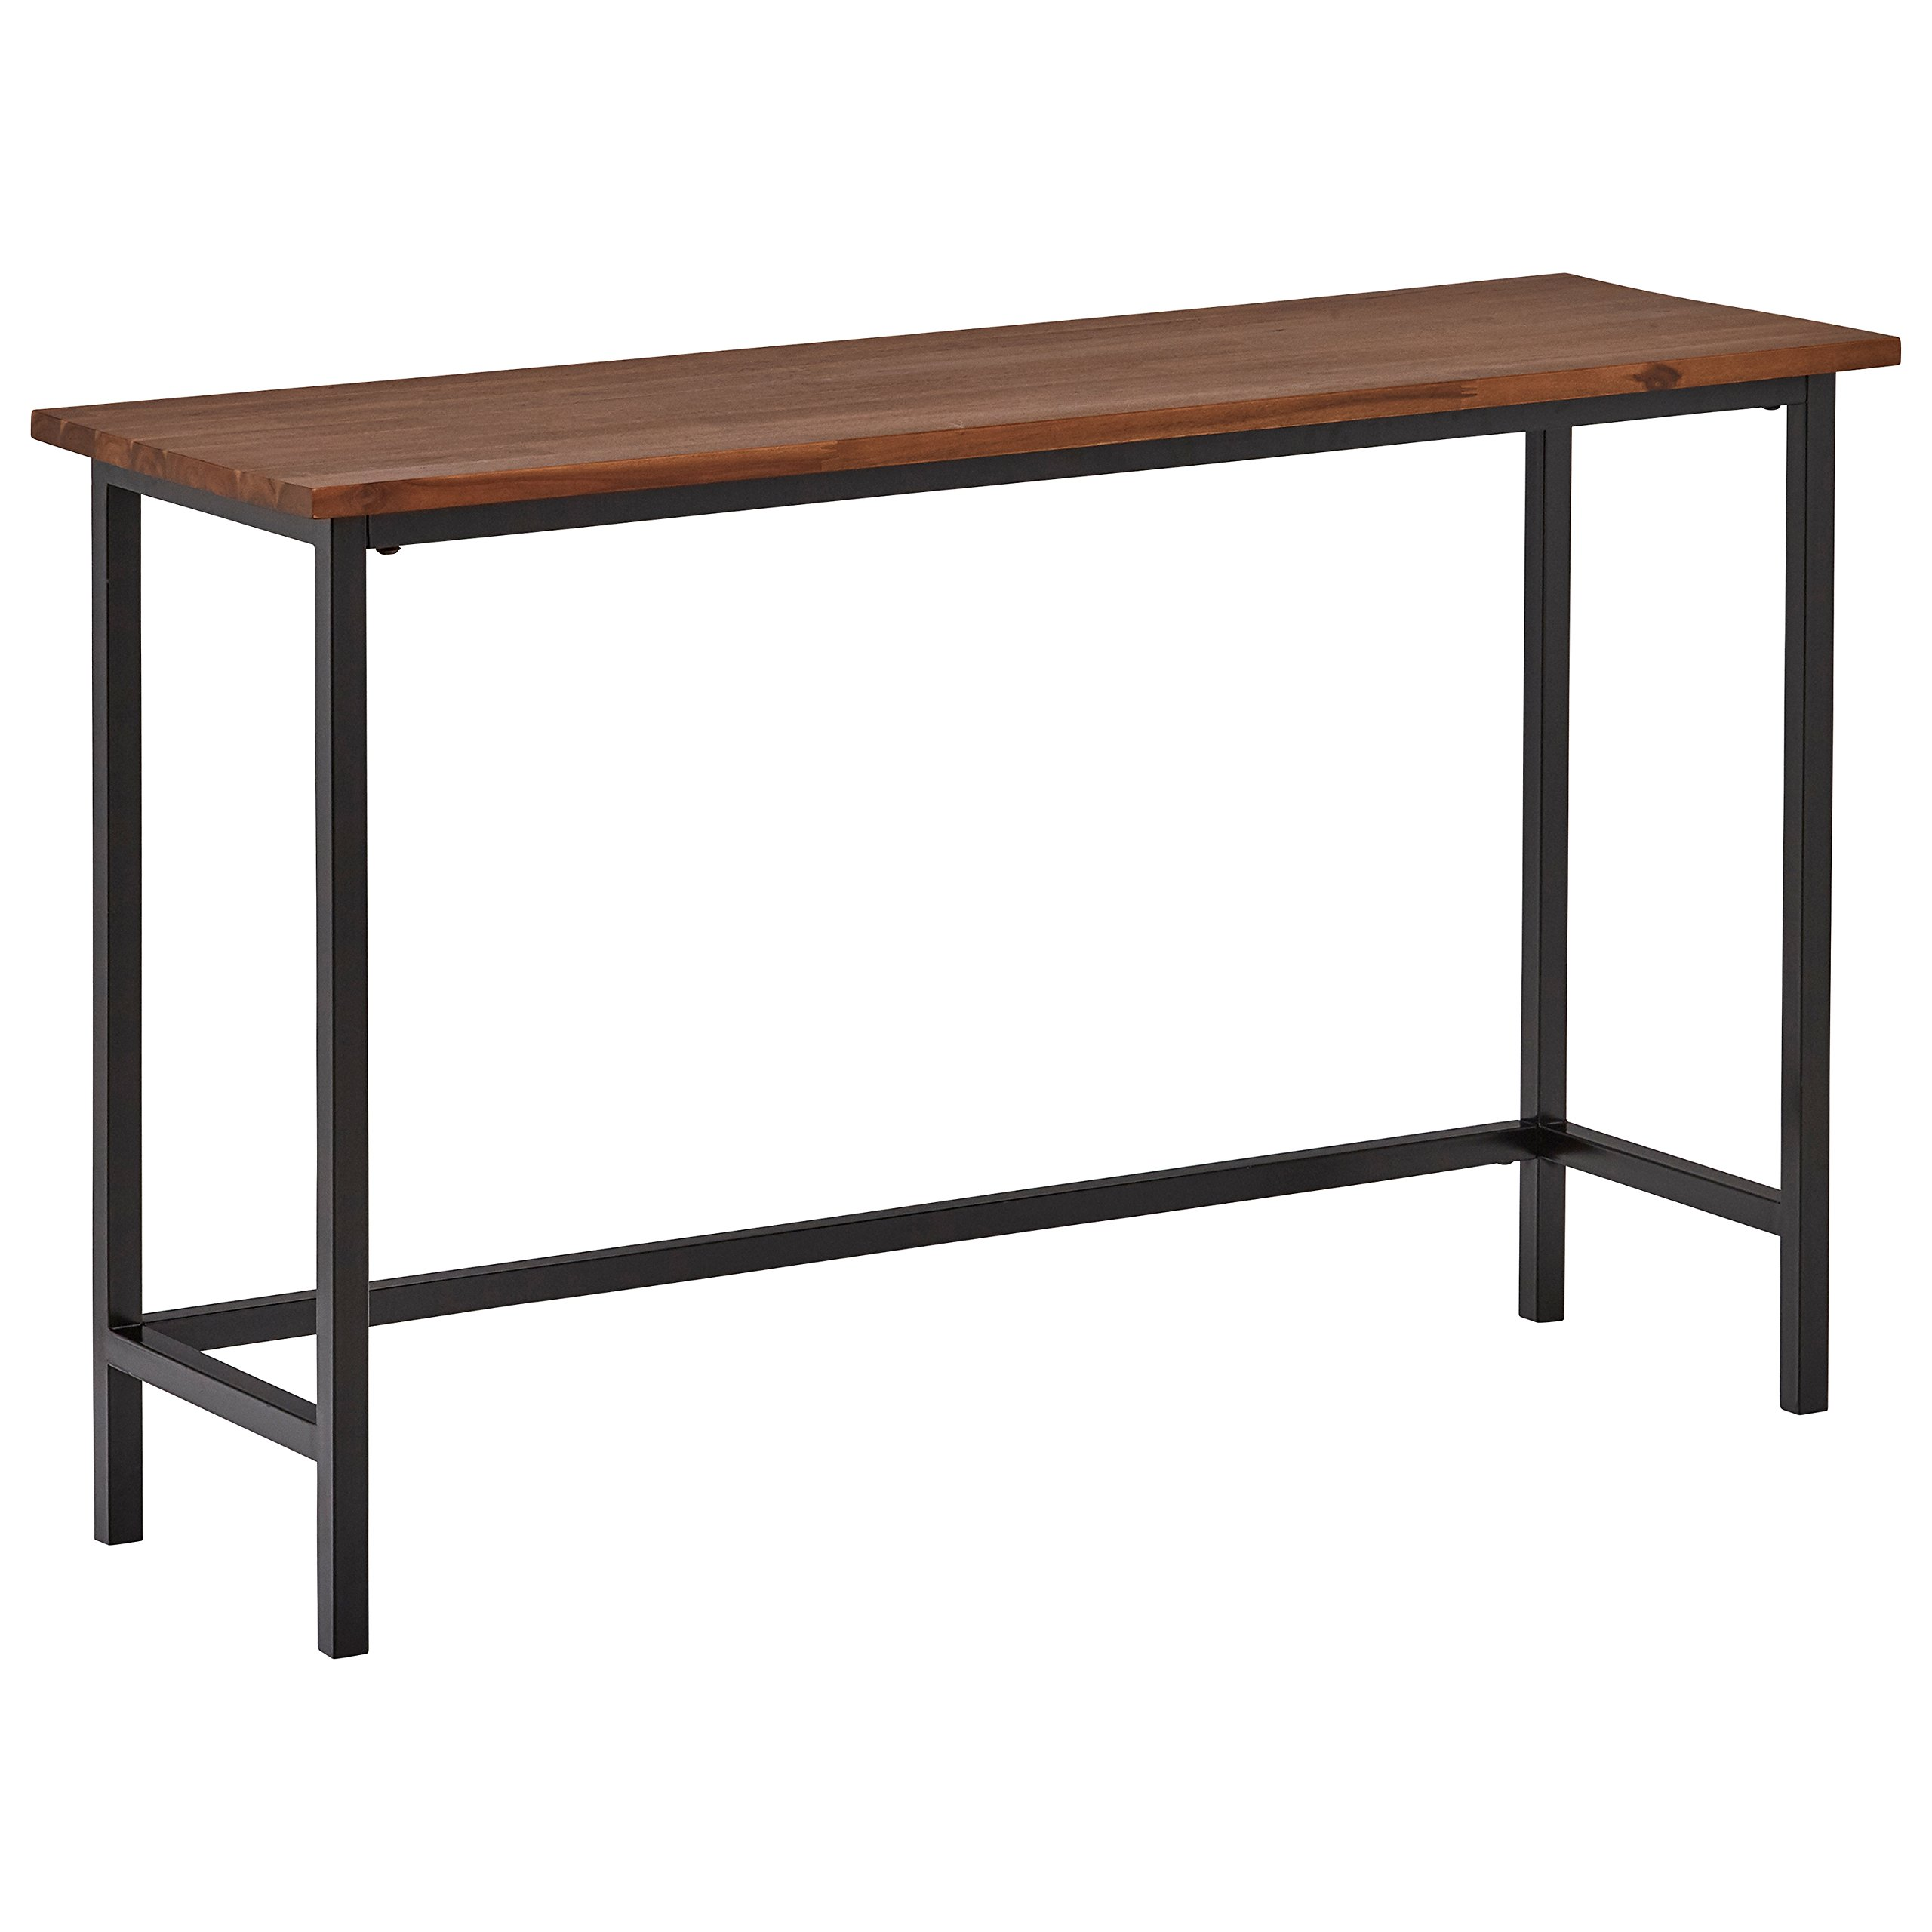 Rivet Industrial Modern Counter-Height Console Bar Table, 47.25''W, Walnut Wood, Metal